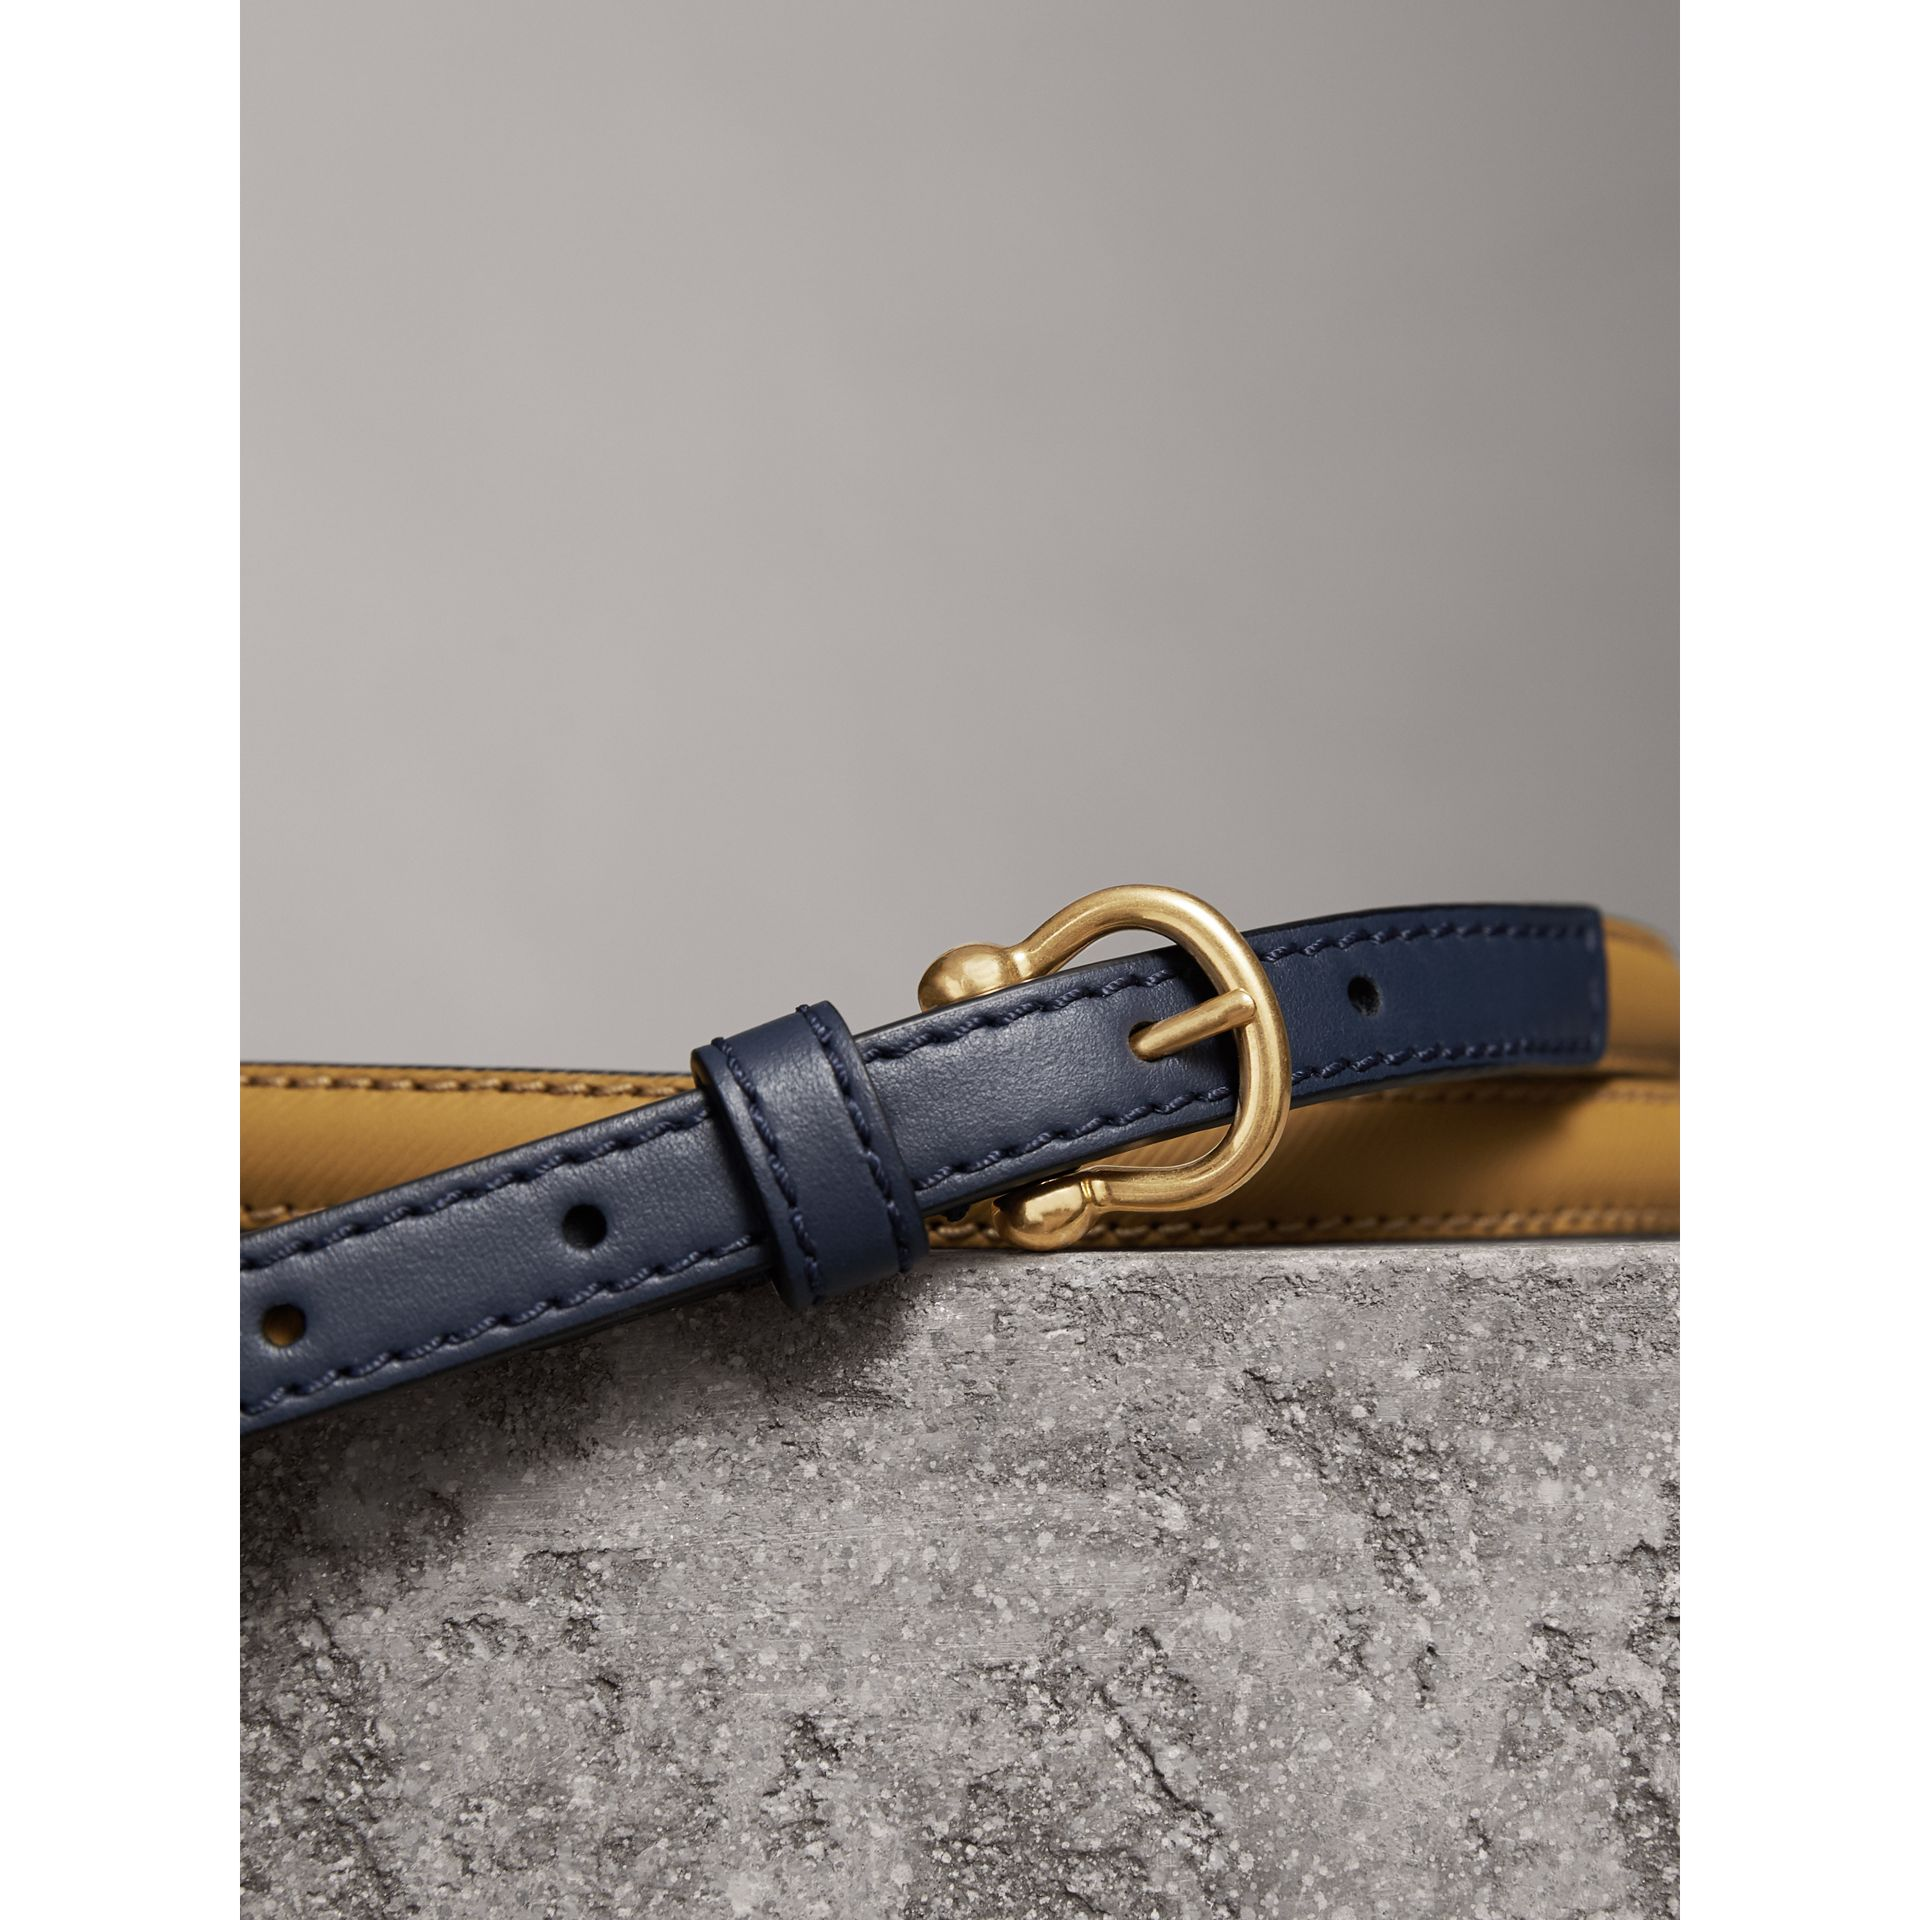 Two-tone Trench Leather Belt in Ochre Yellow / Ink Blue - Women | Burberry - gallery image 2